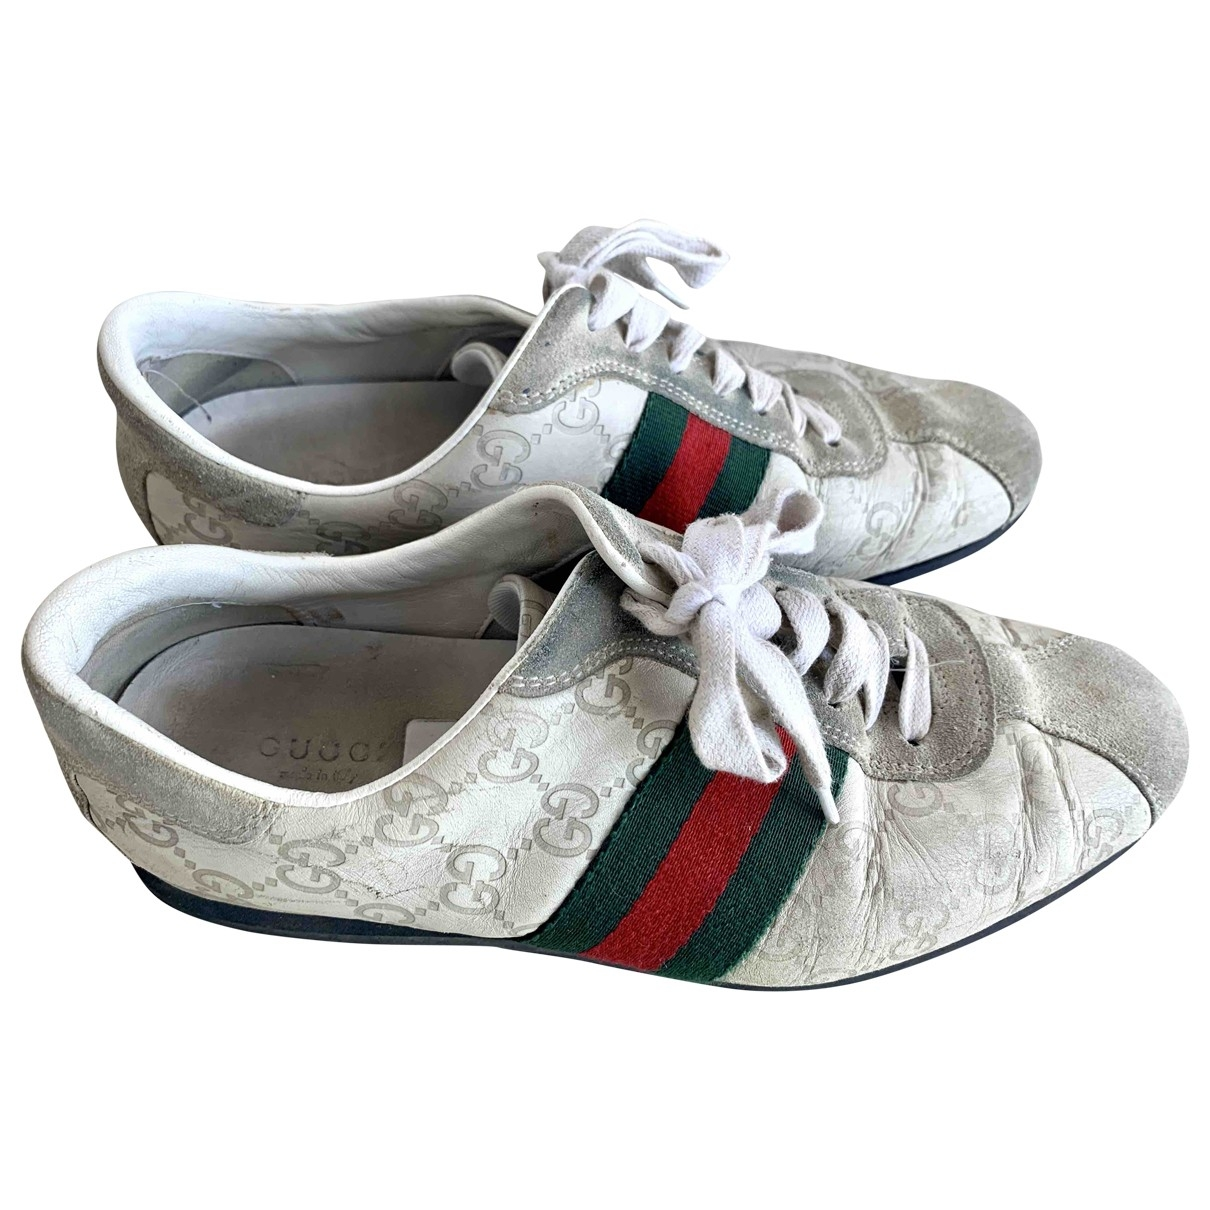 Gucci Ace Beige Leather Trainers for Women 38 EU